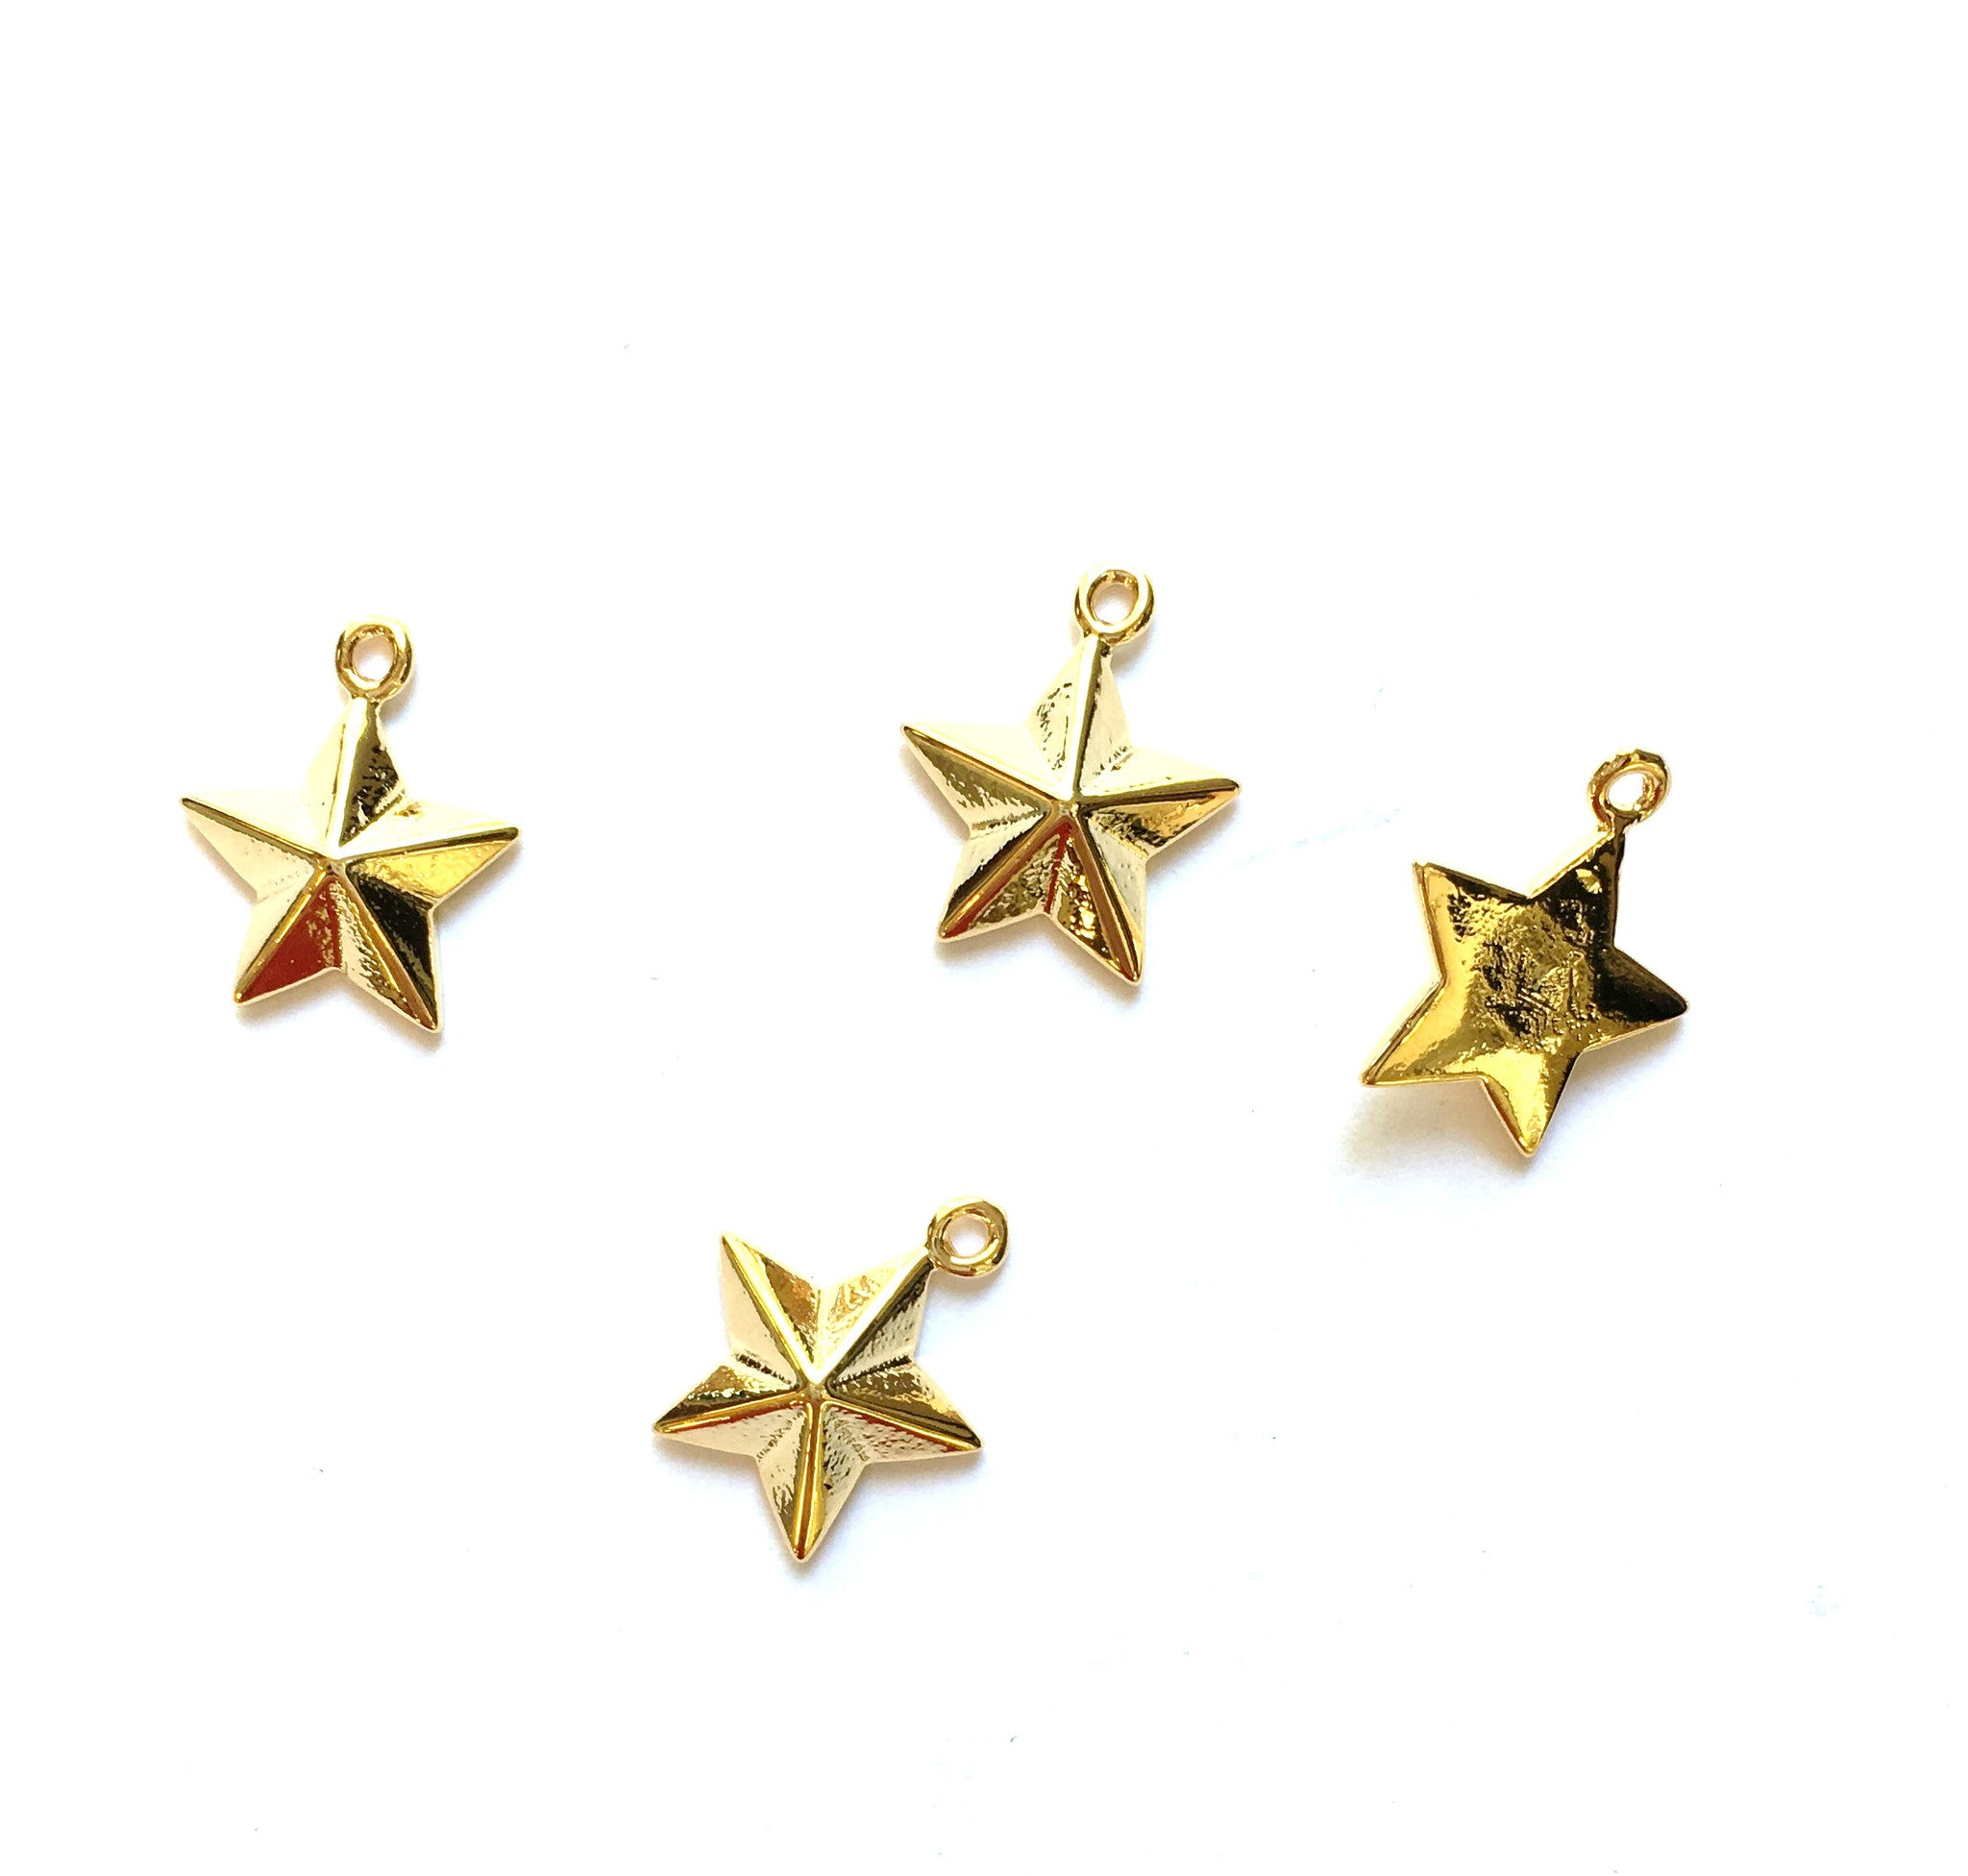 E - Findings Charm - Nautical Star Charm Component - 12x14mm (1 Pair)